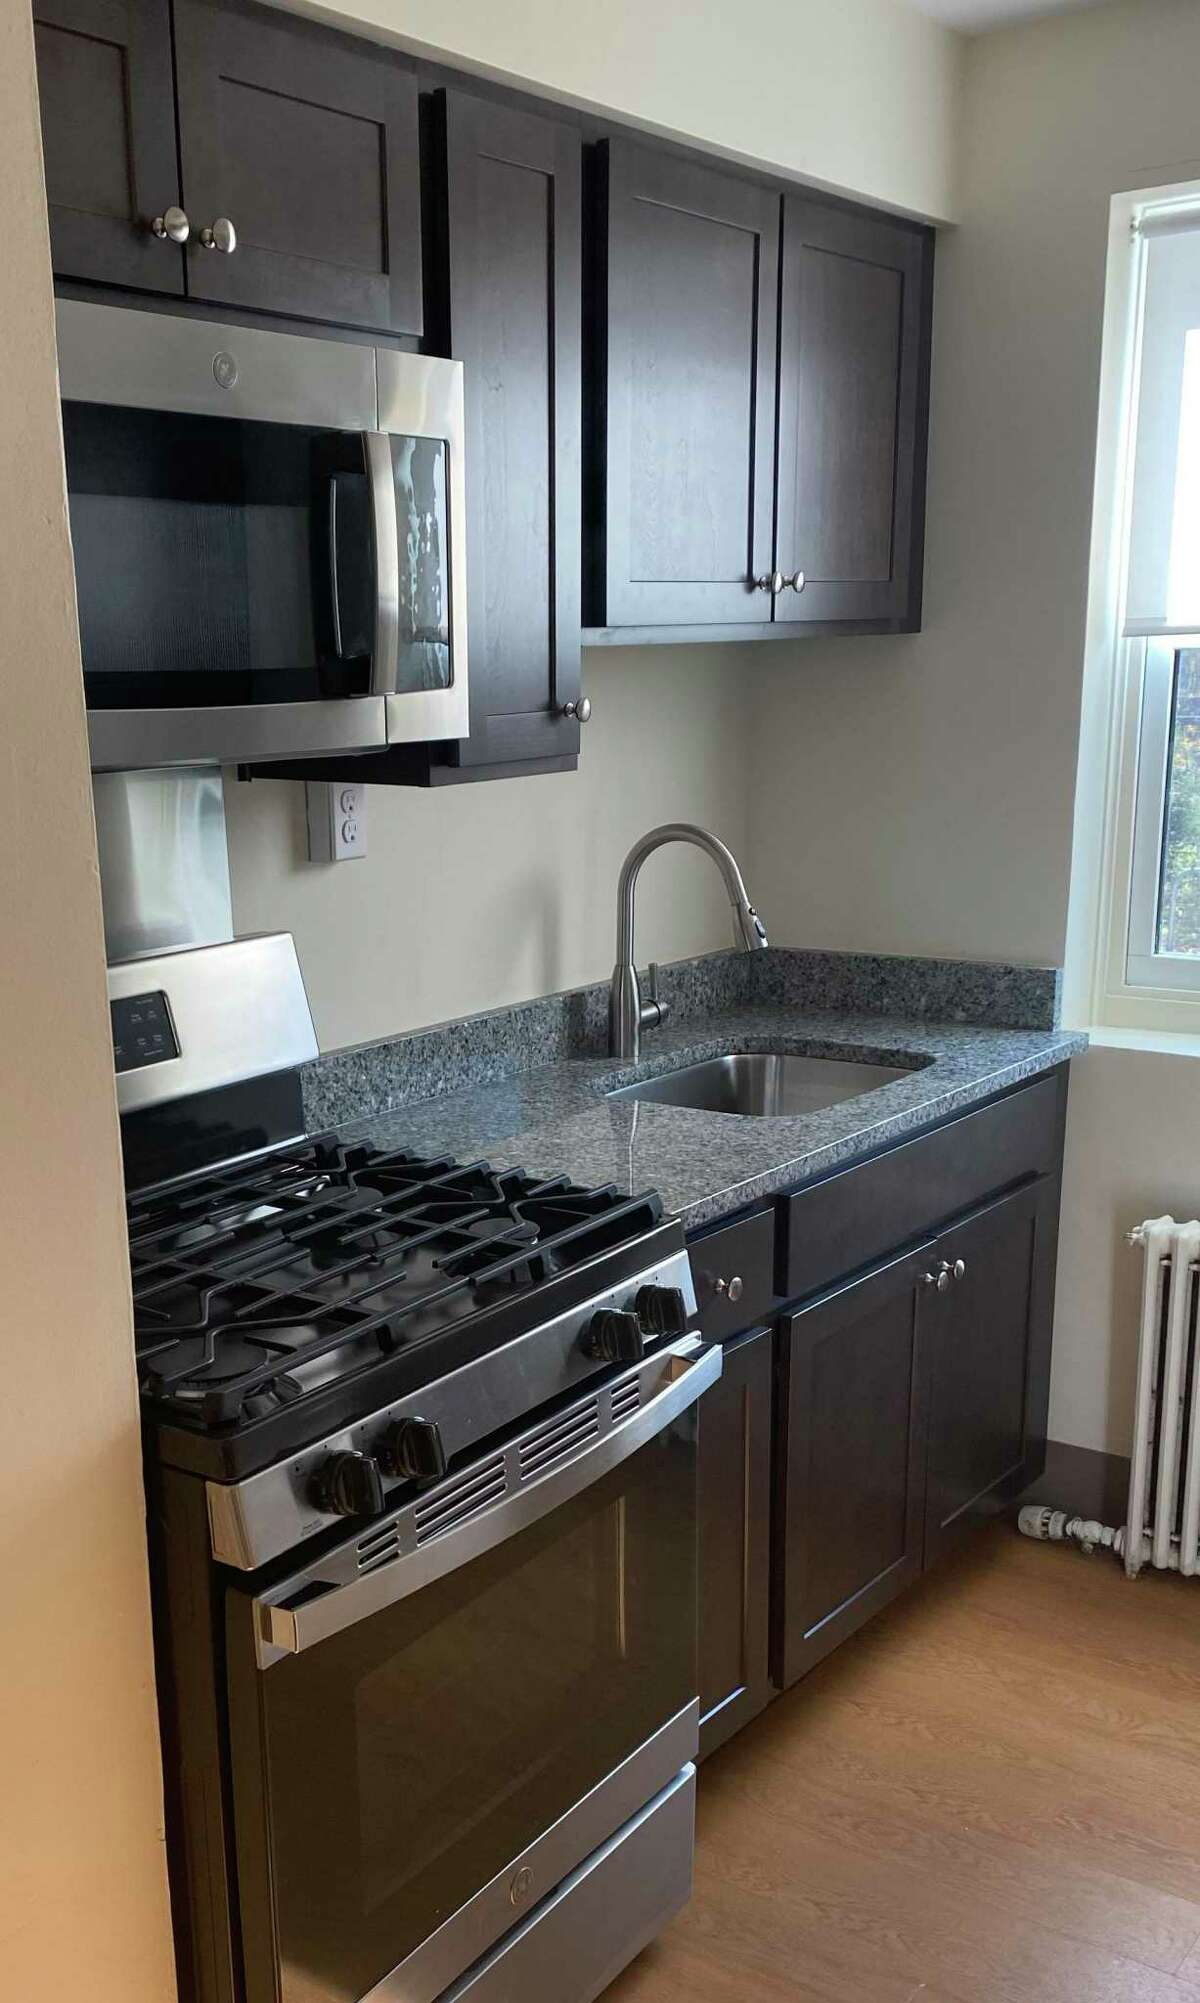 Greenwich Communities is putting the finishing touches on new kitchens for all 110 units in Wilbur Peck Court.